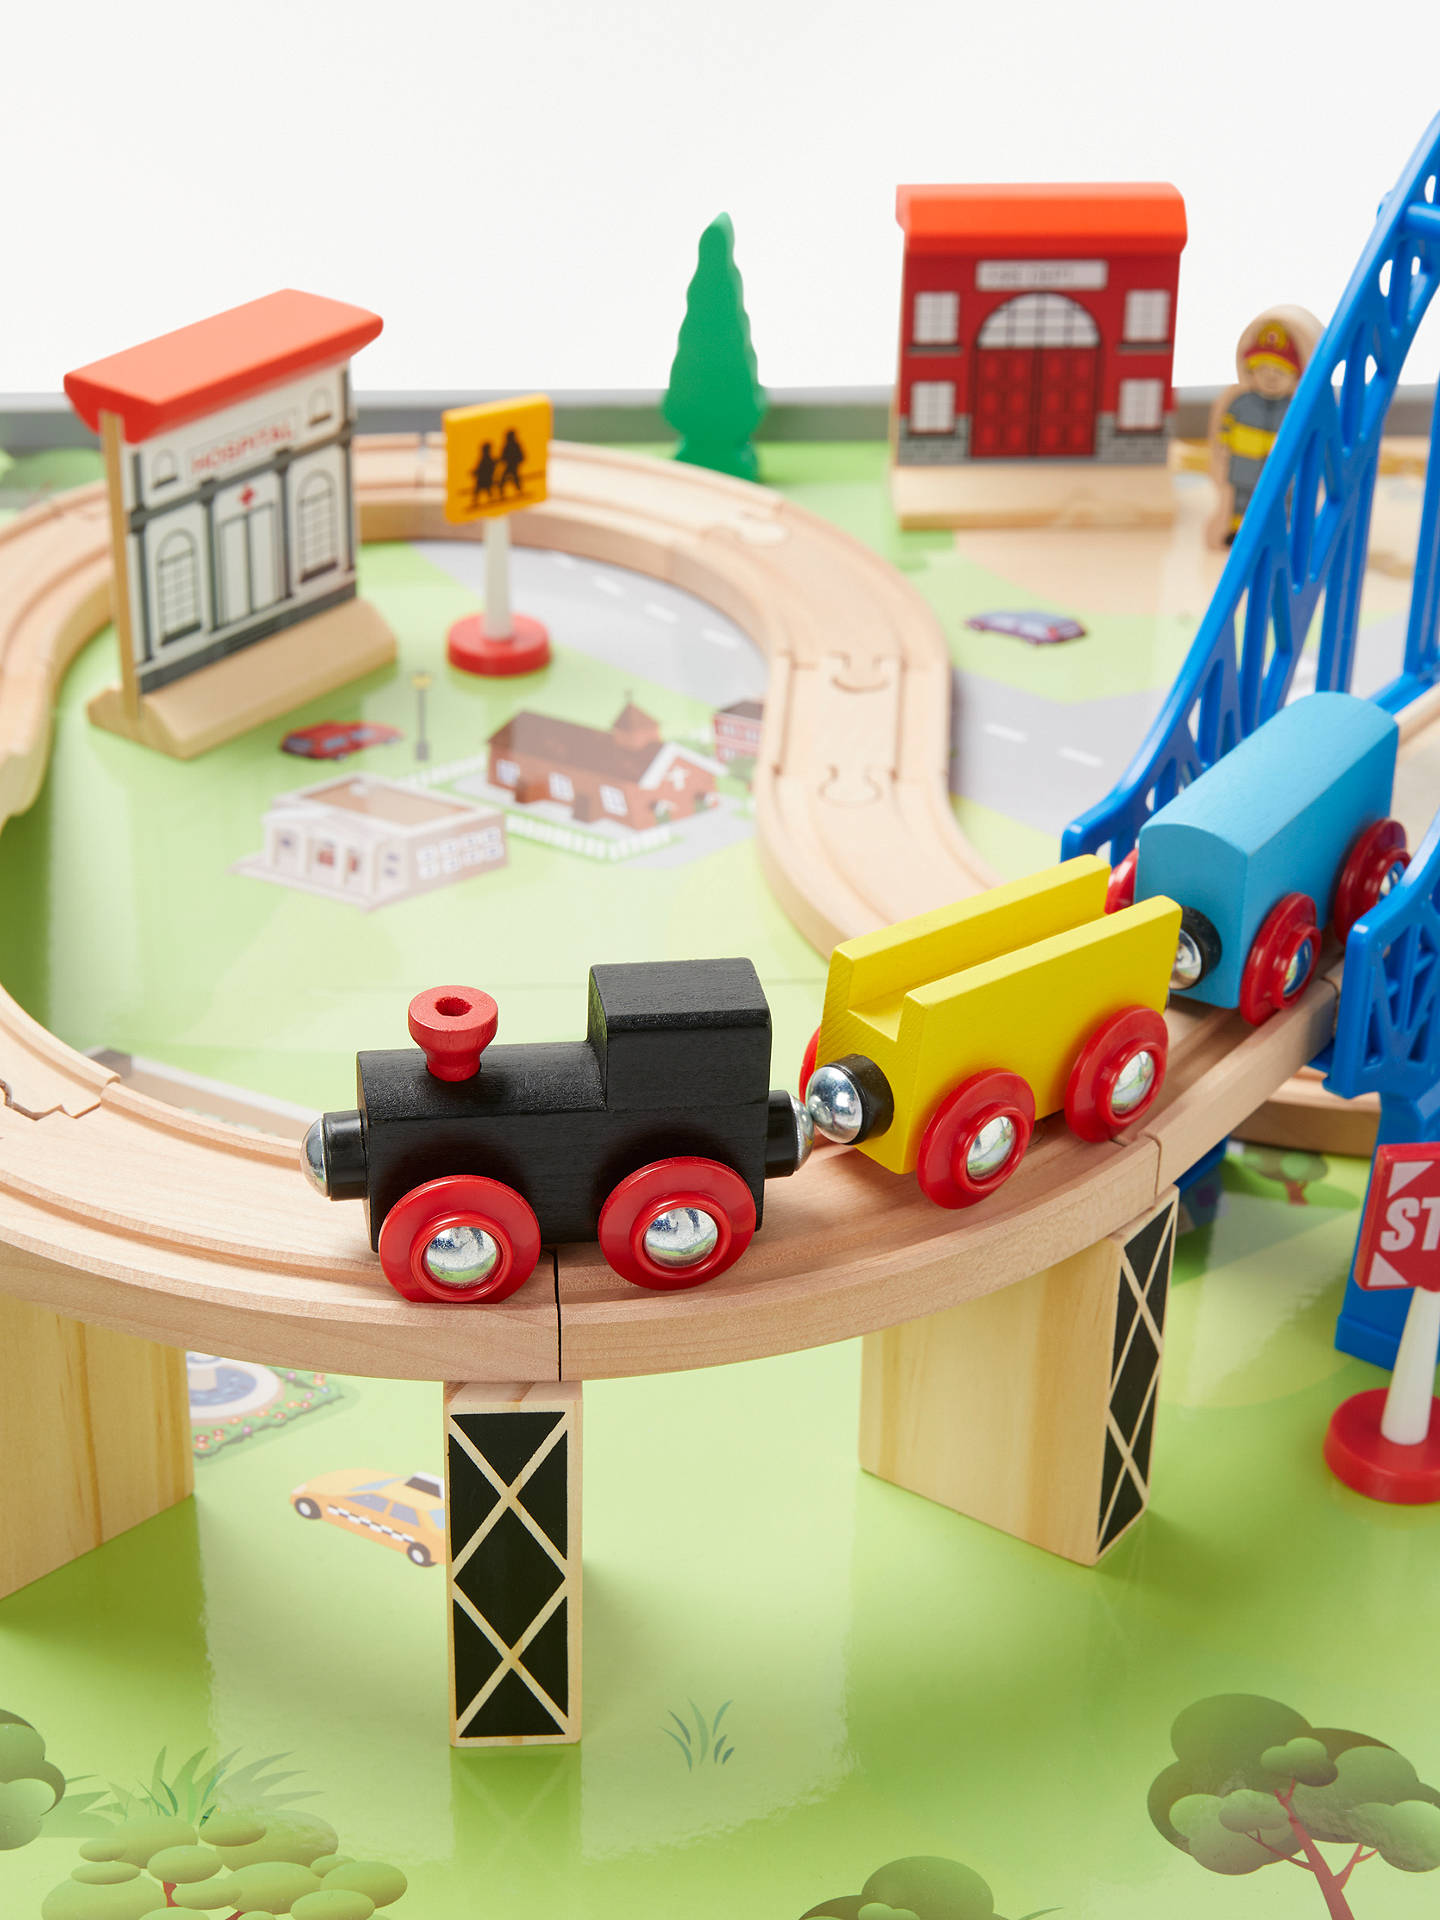 Buy John Lewis & Partners Wooden Train Table 50 Pieces Online at johnlewis.com